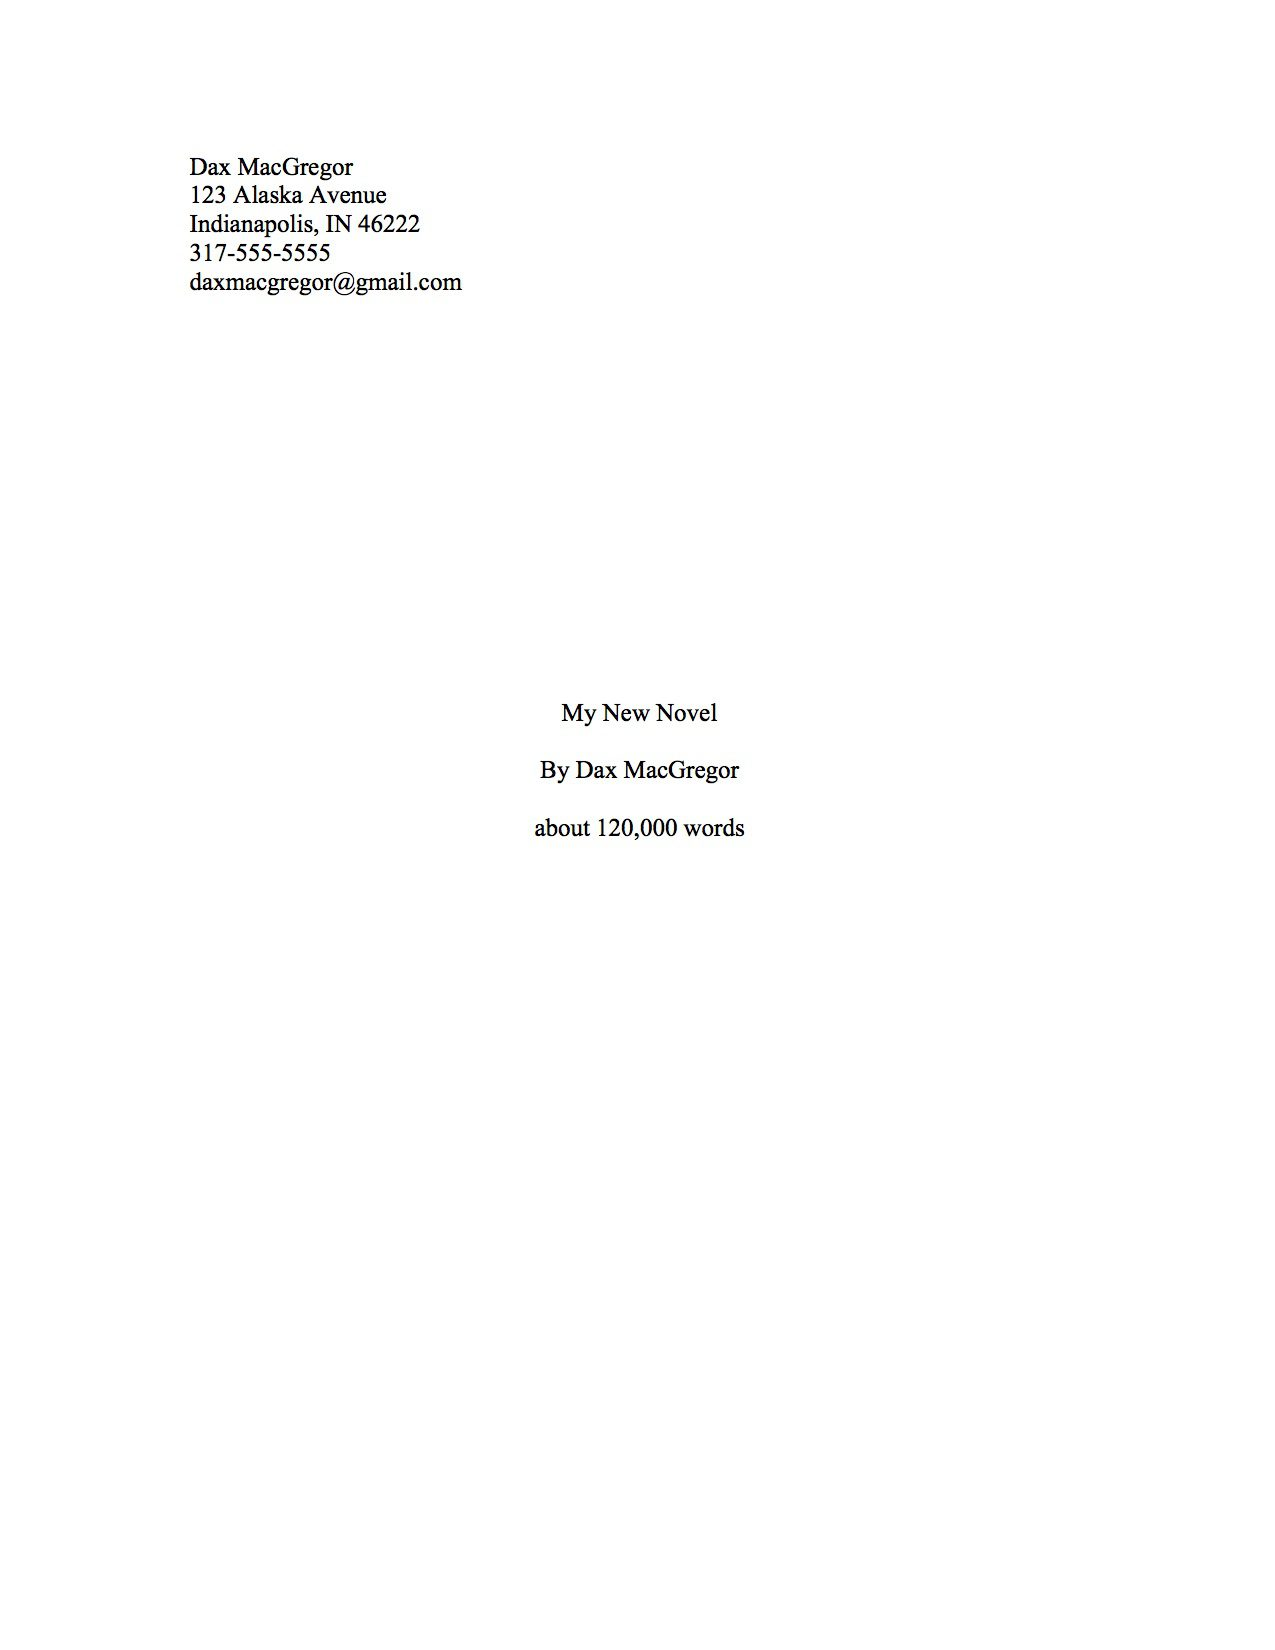 proper manuscript format for a novel first manuscript sample title page